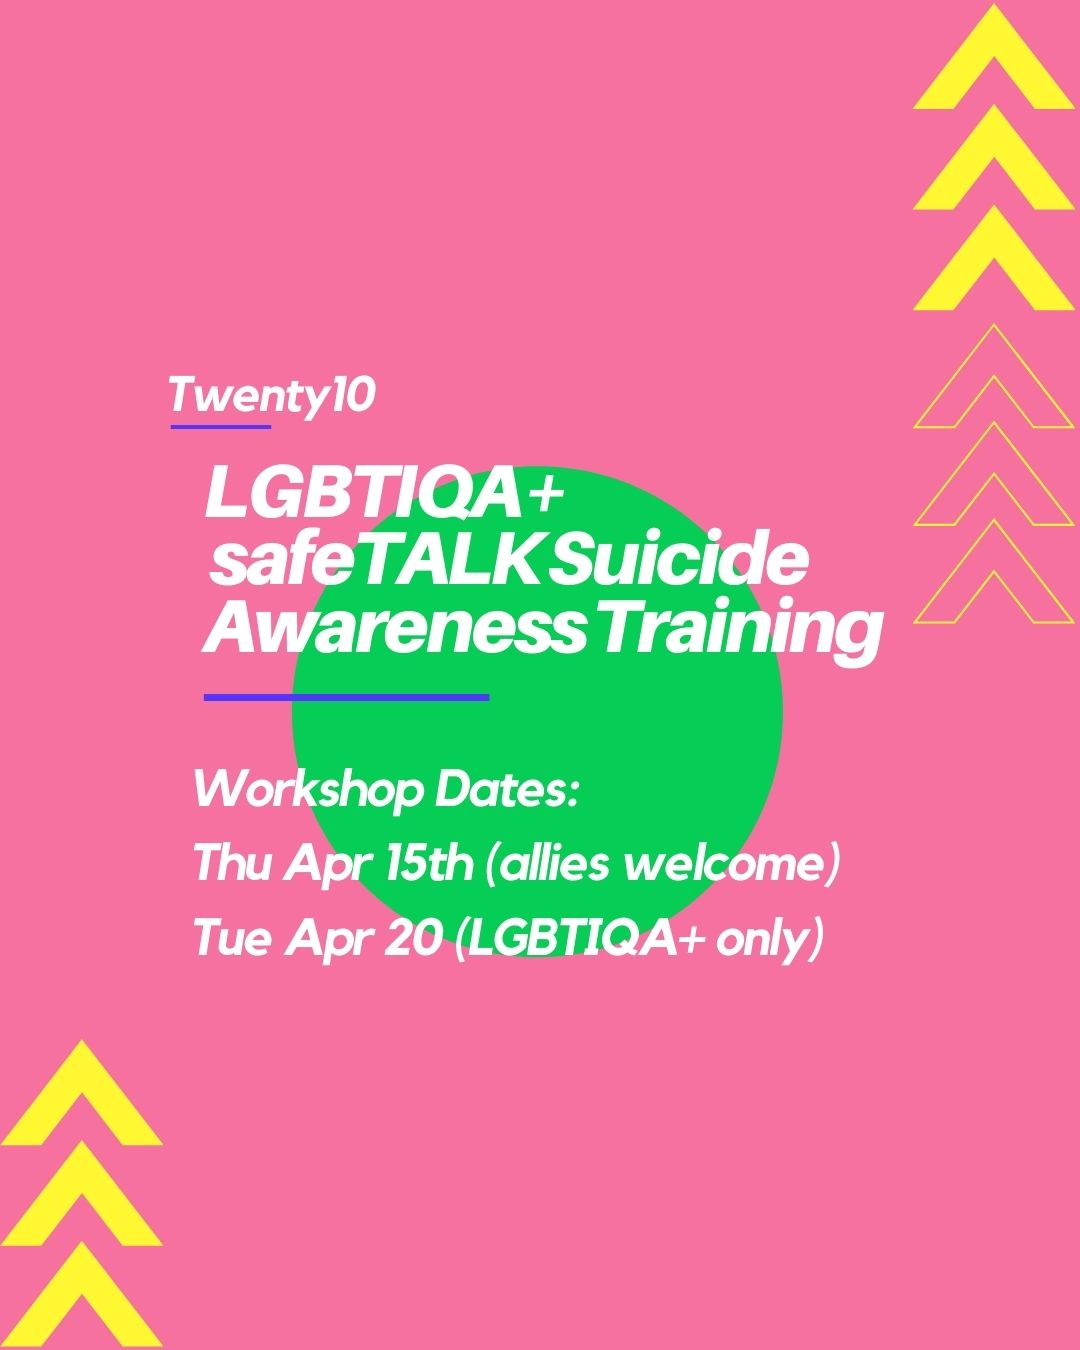 A pink, yellow and green geometric background with text:  Twenty10 LGBTIQA+  safeTALK Suicide Awareness Training. Workshop Dates: Thu Apr 15th (allies welcome), Tue Apr 20 (LGBTIQA+ only)